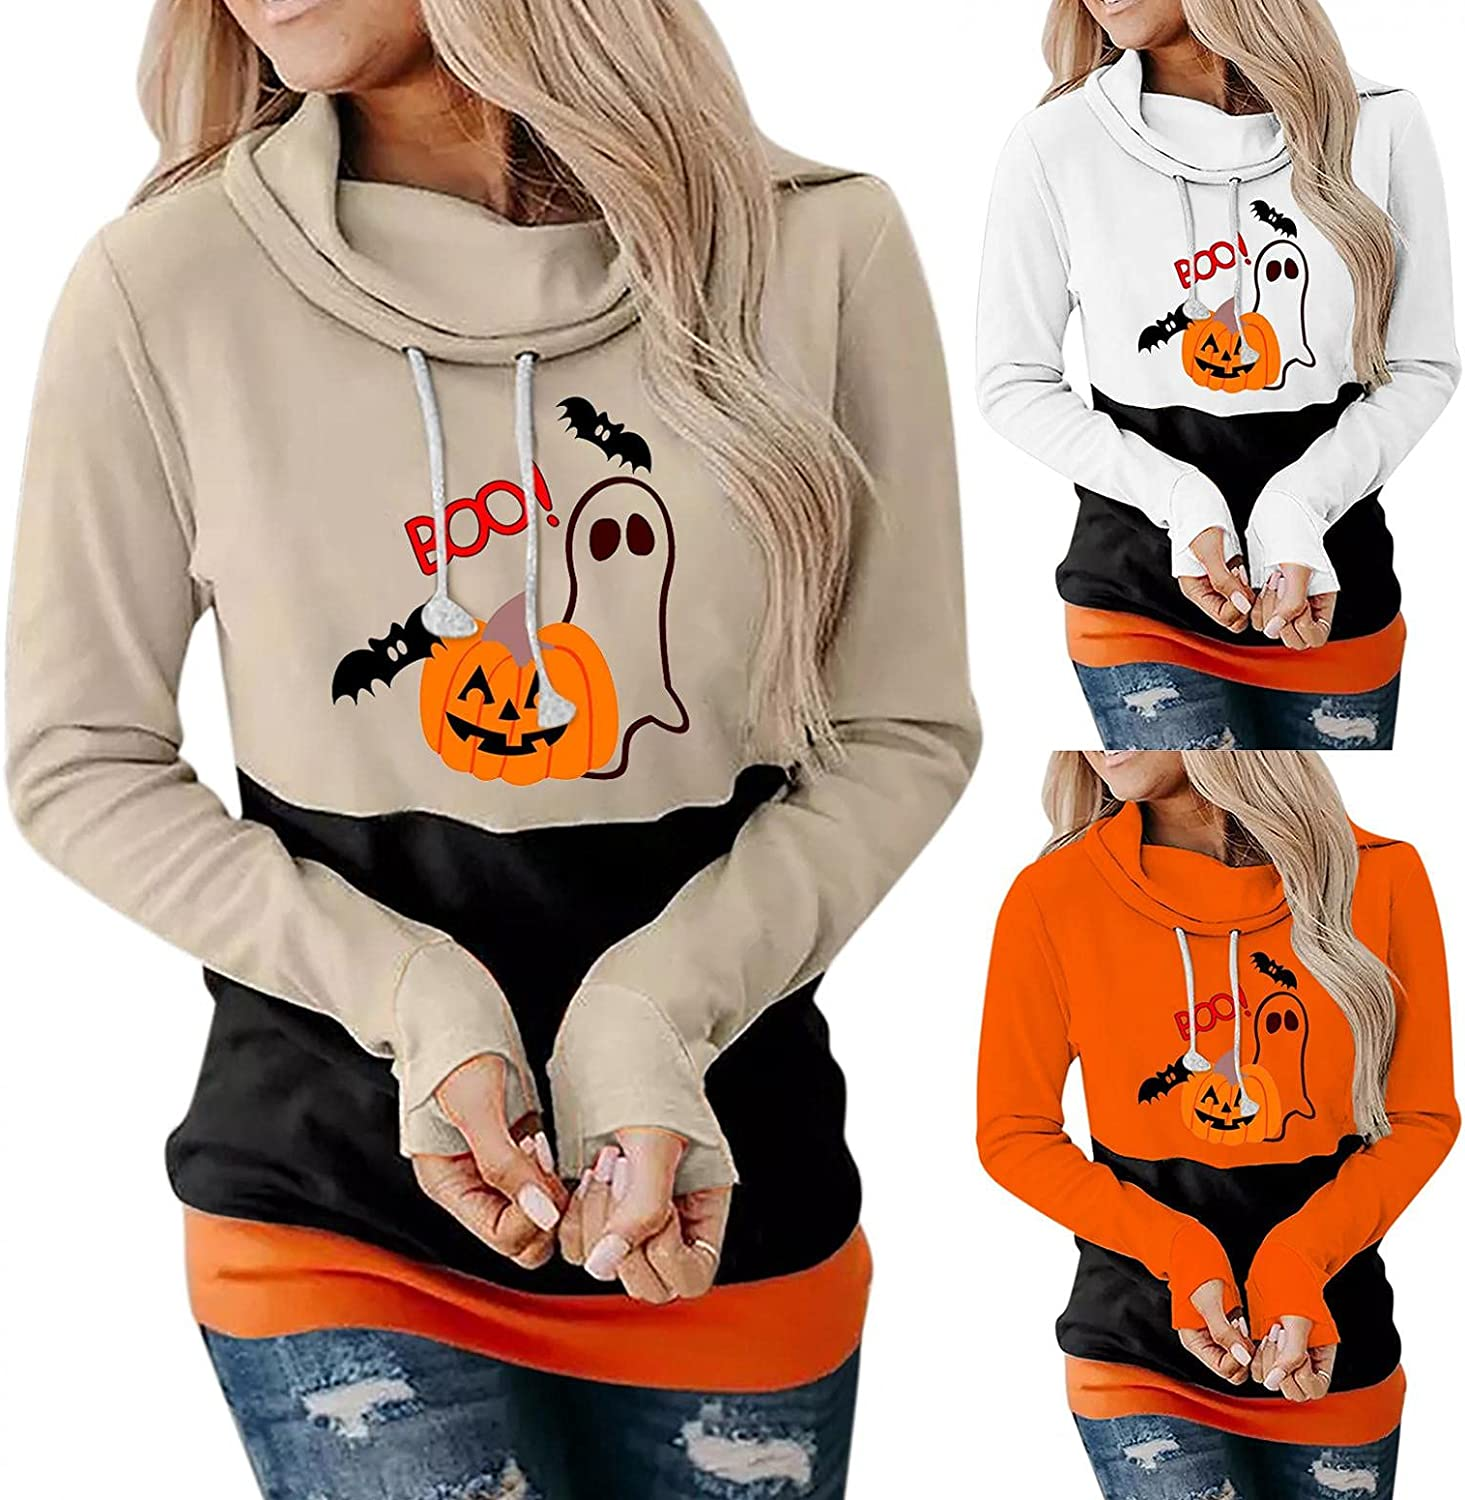 Lingbing Halloween Hoodies for Women Funny Cute Pumpkin Ghost Graphic Tops Fashion Color Block Sweatshirts Fall Blouses